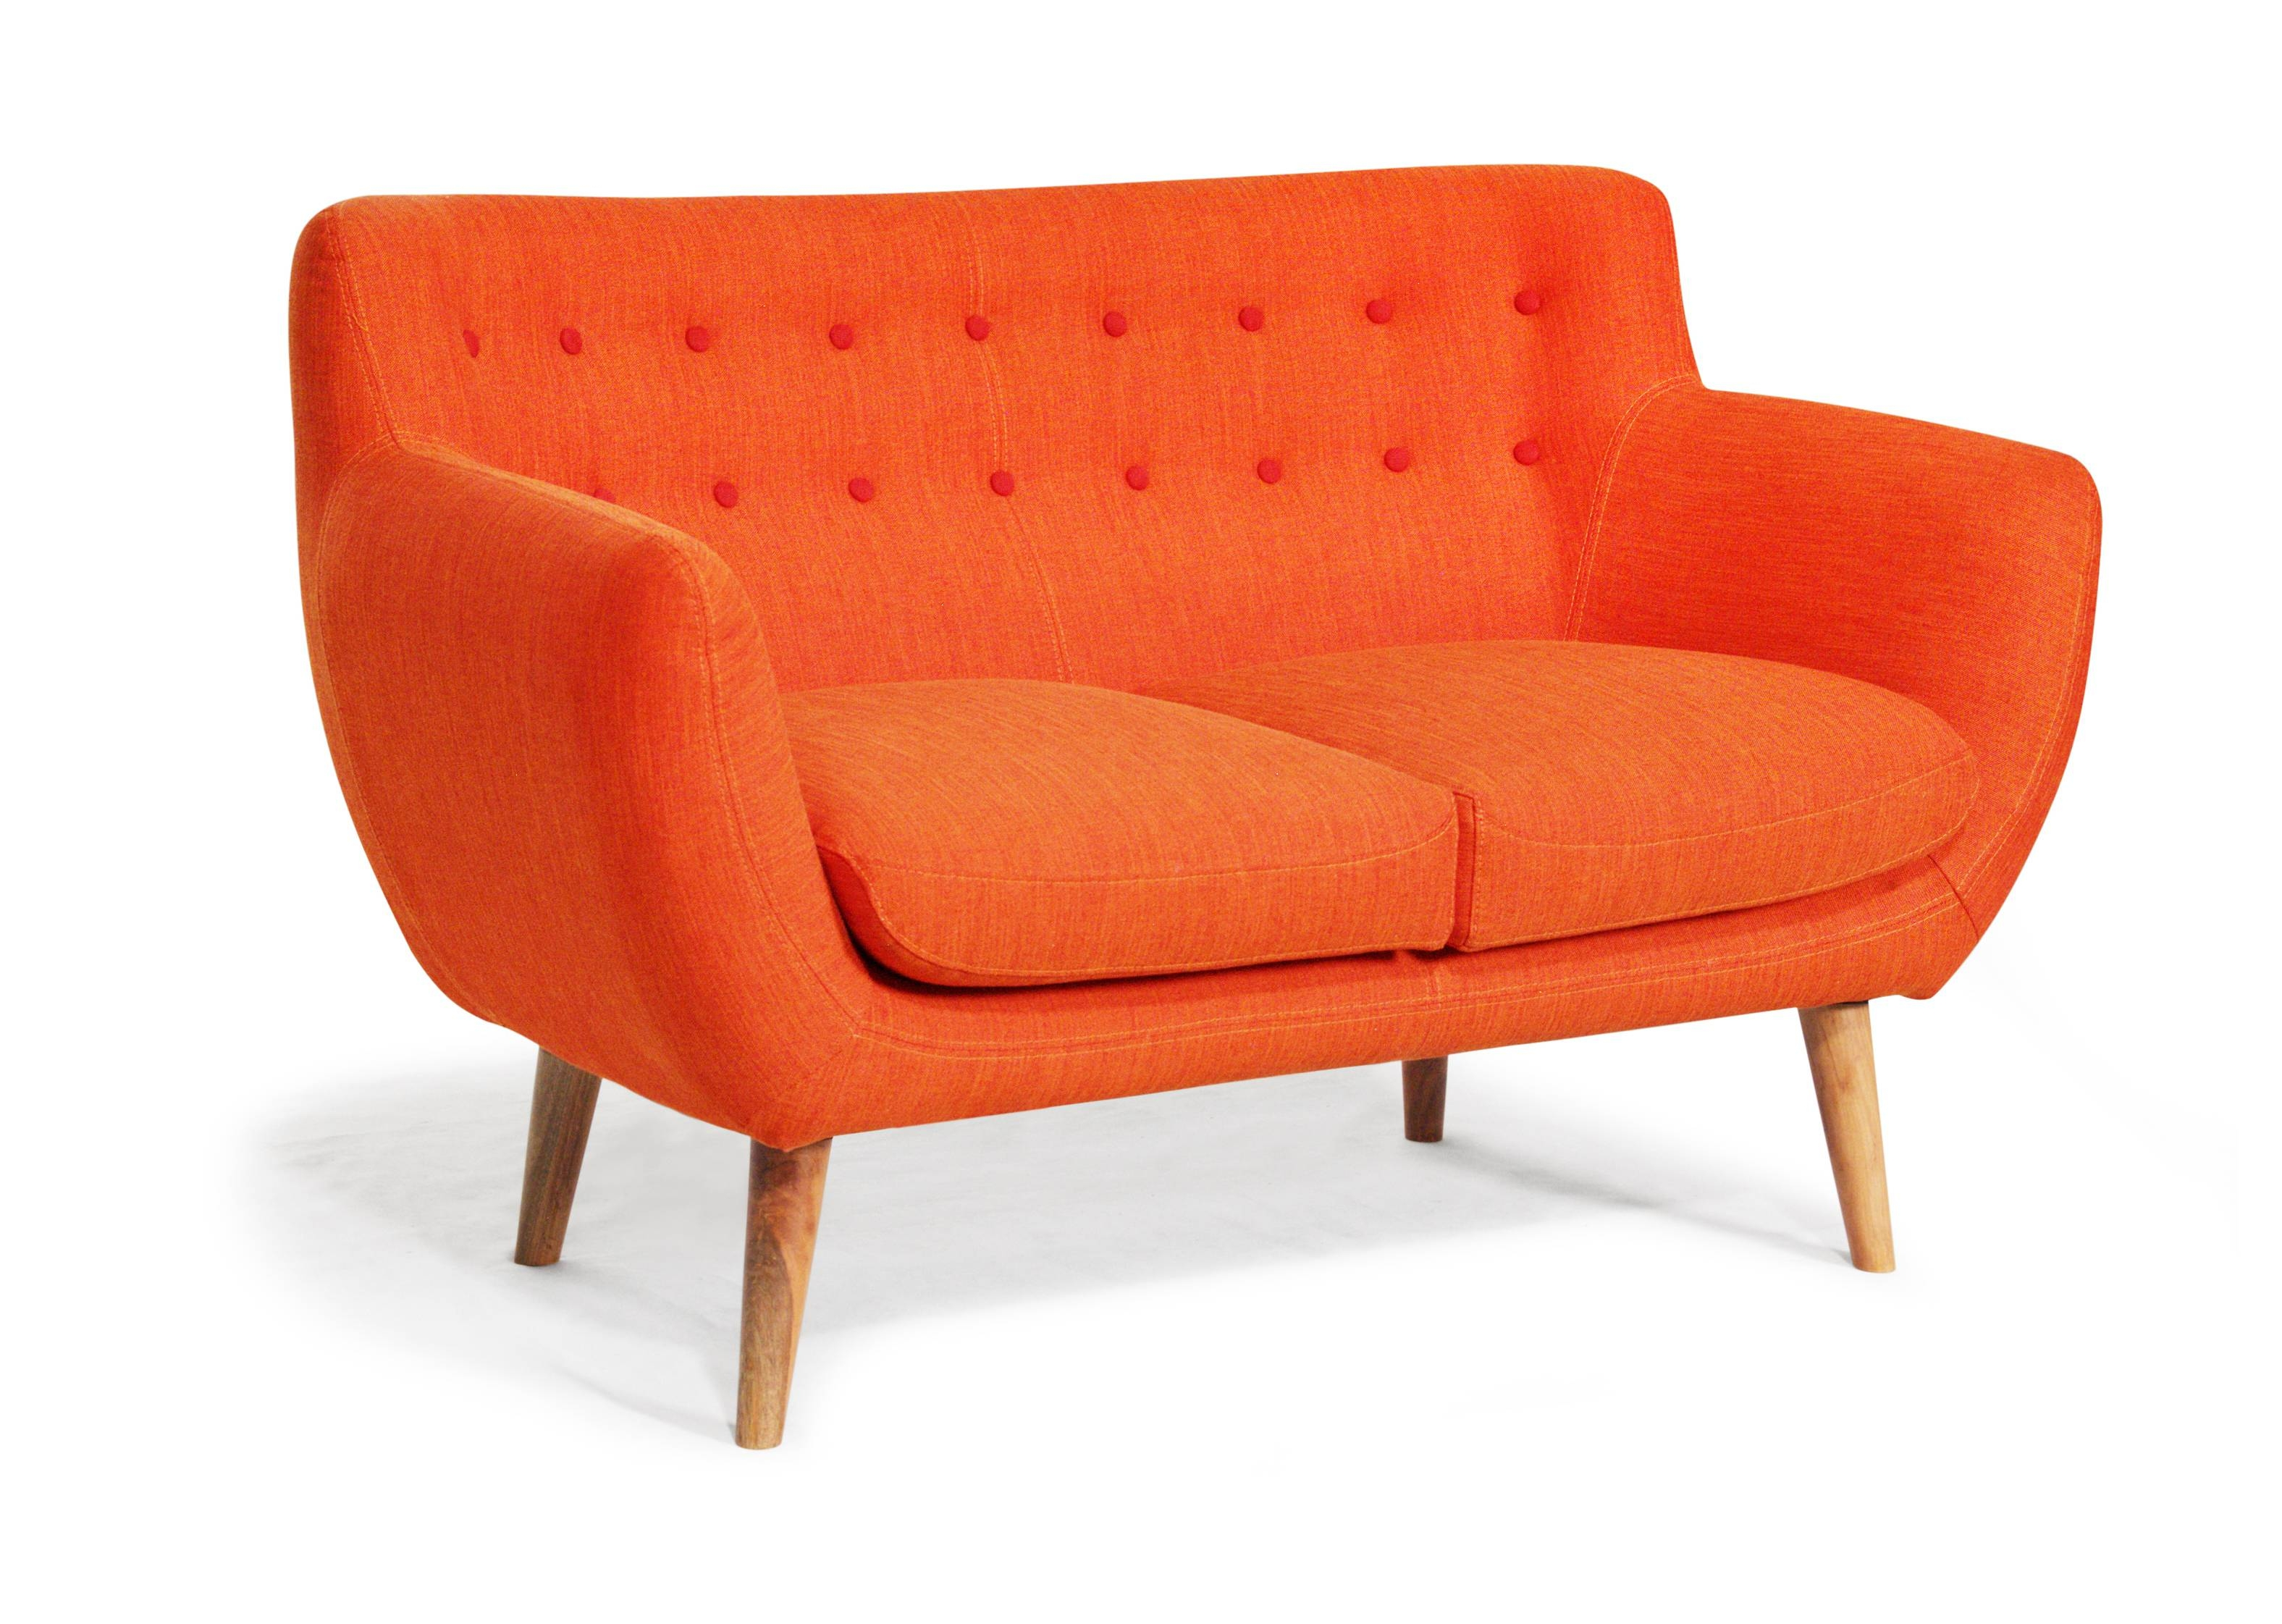 Furniture Designing Home View Rukle Dashing Orange Sofa For ~ Idolza intended for Orange Sofa Chairs (Image 6 of 15)